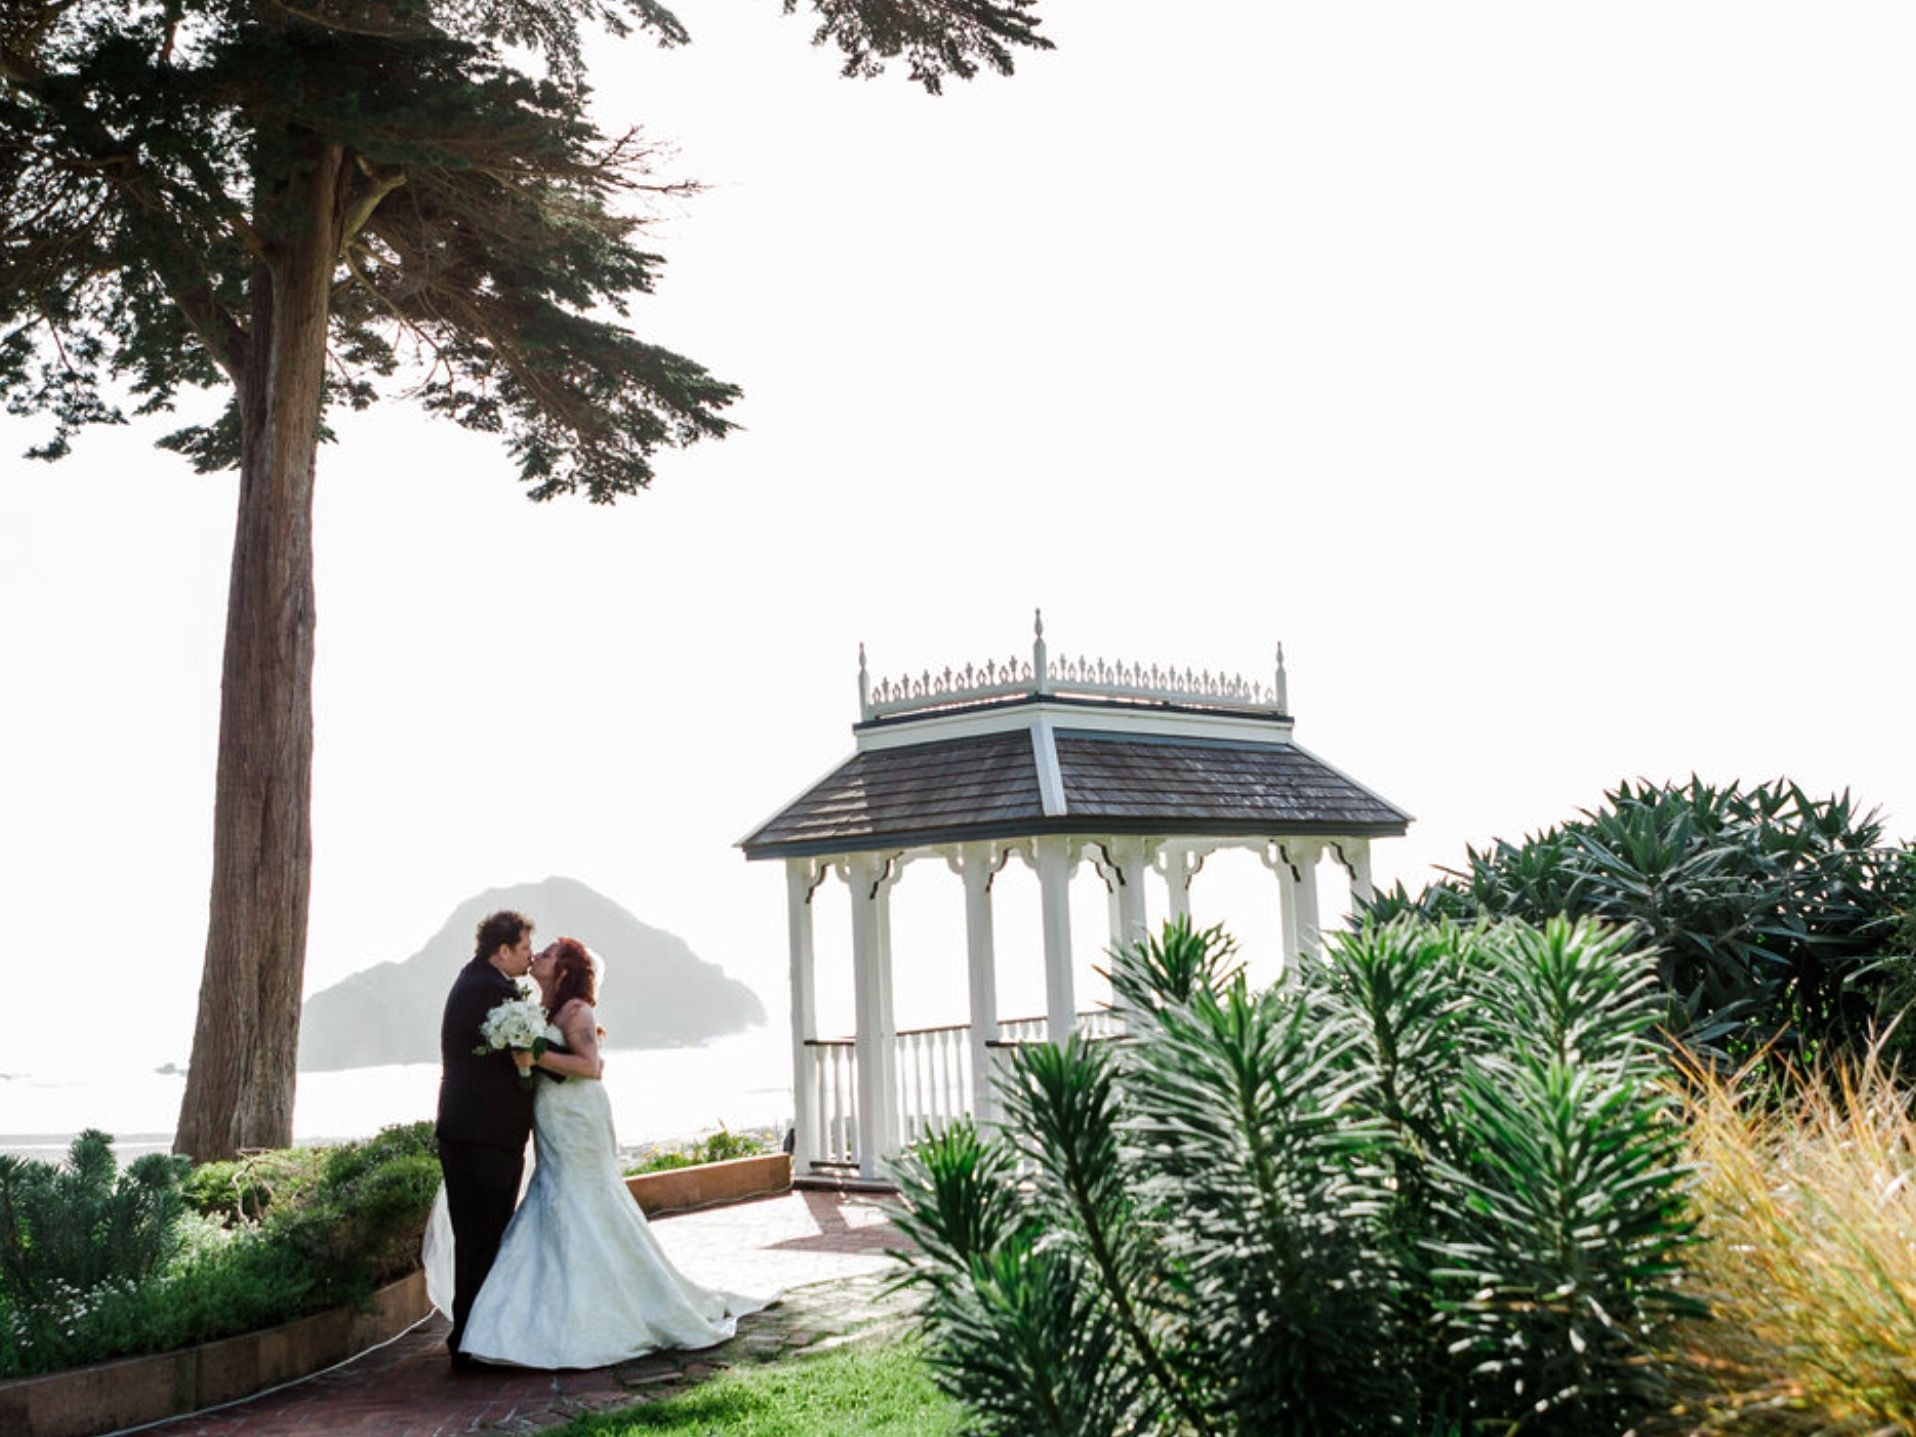 The Elk Cove Inn Spa Mendocino Coast Wedding Venue Tammie Gilchrist Photographer Lrfarms